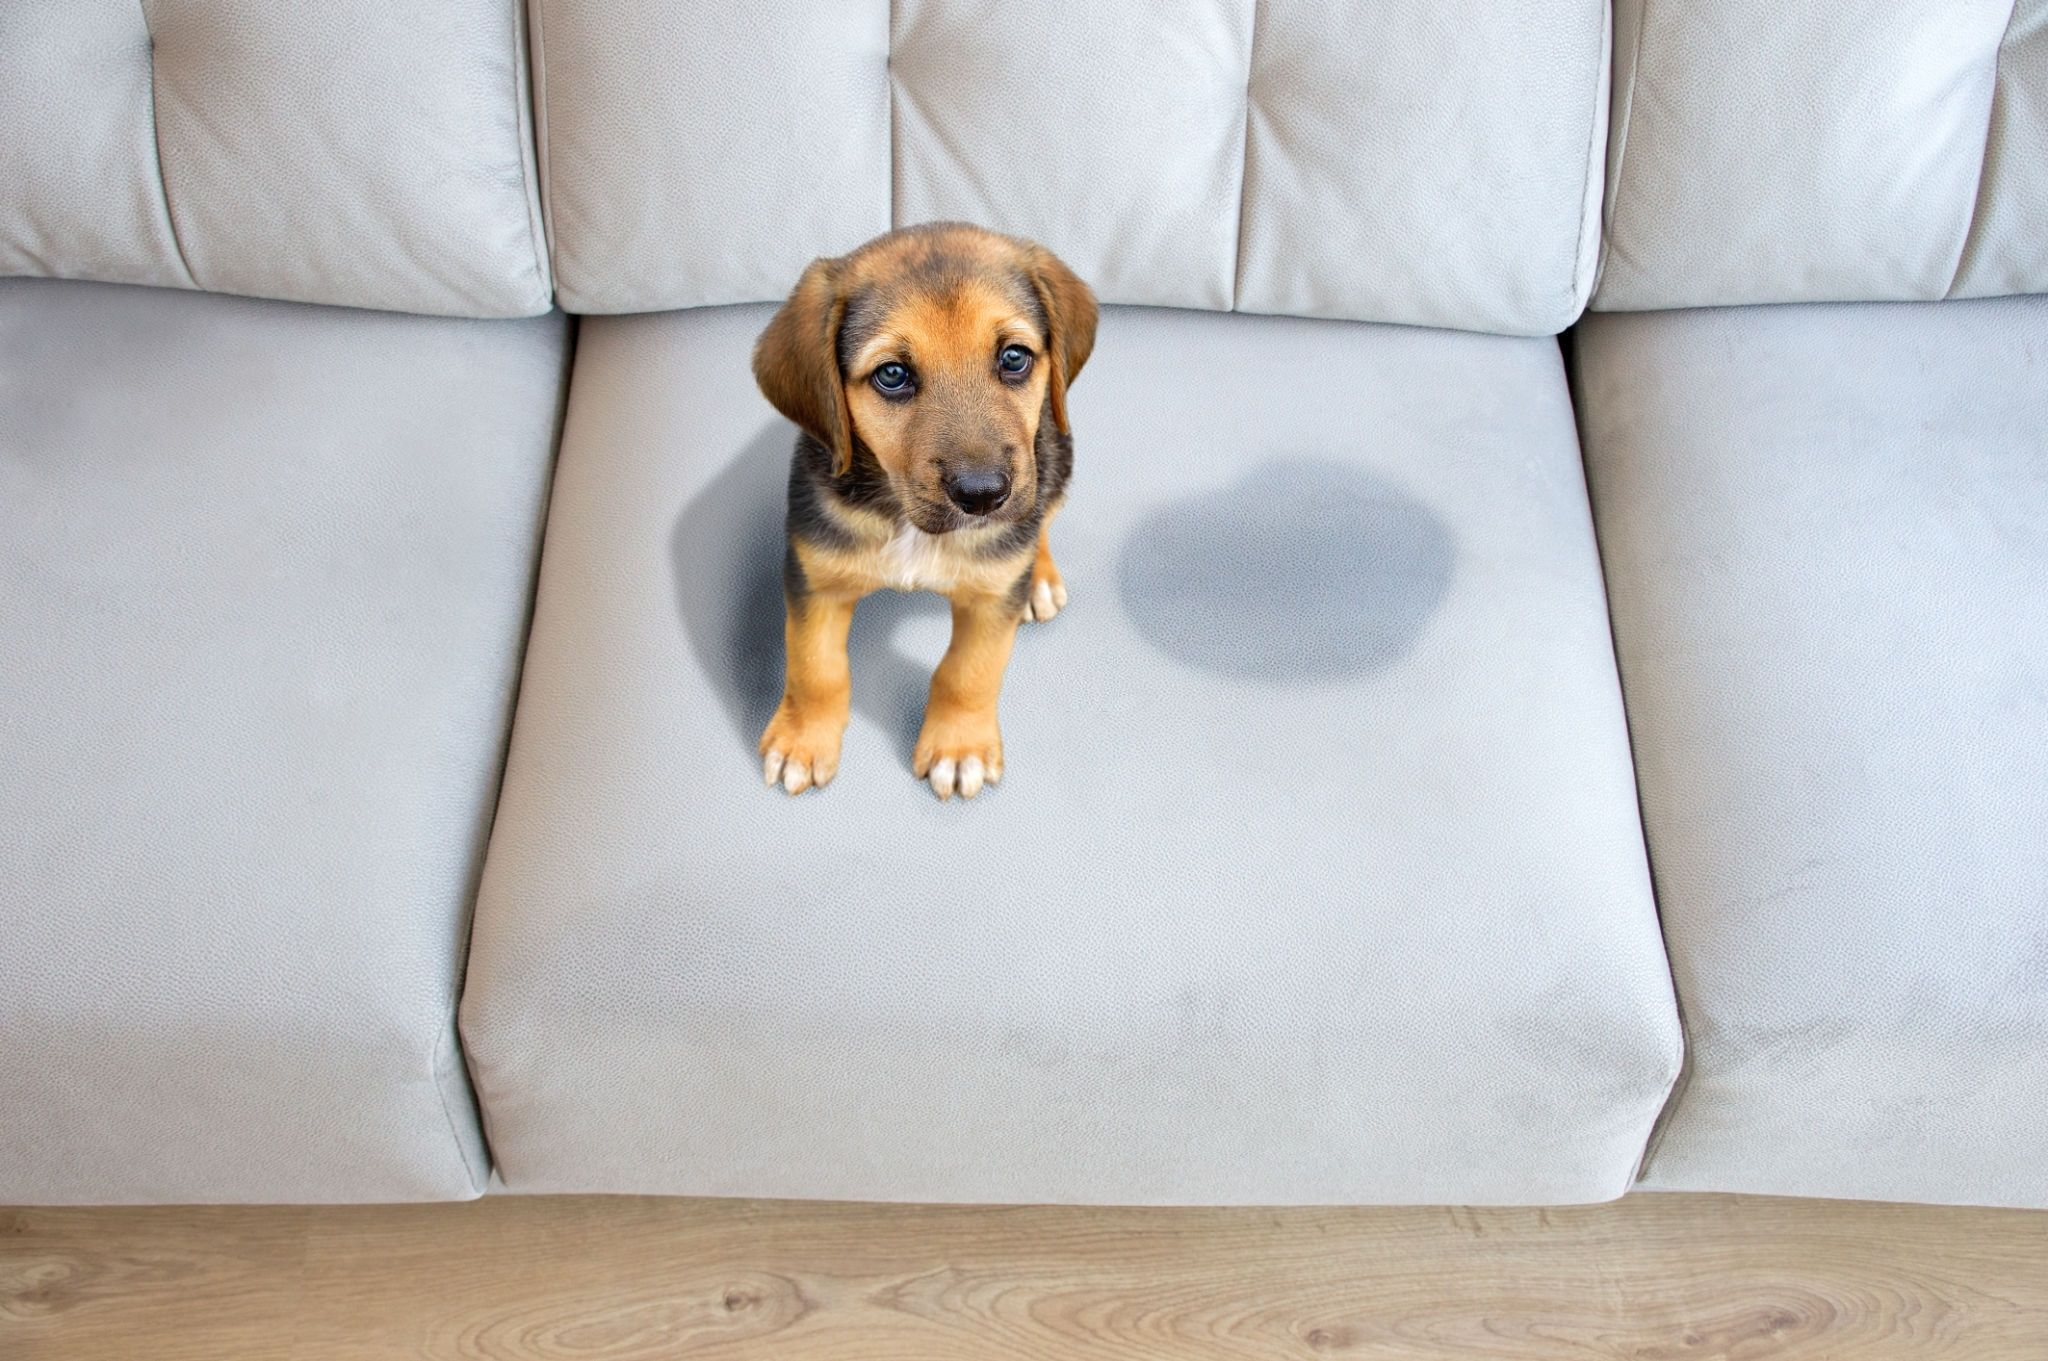 my dog peed on my couch